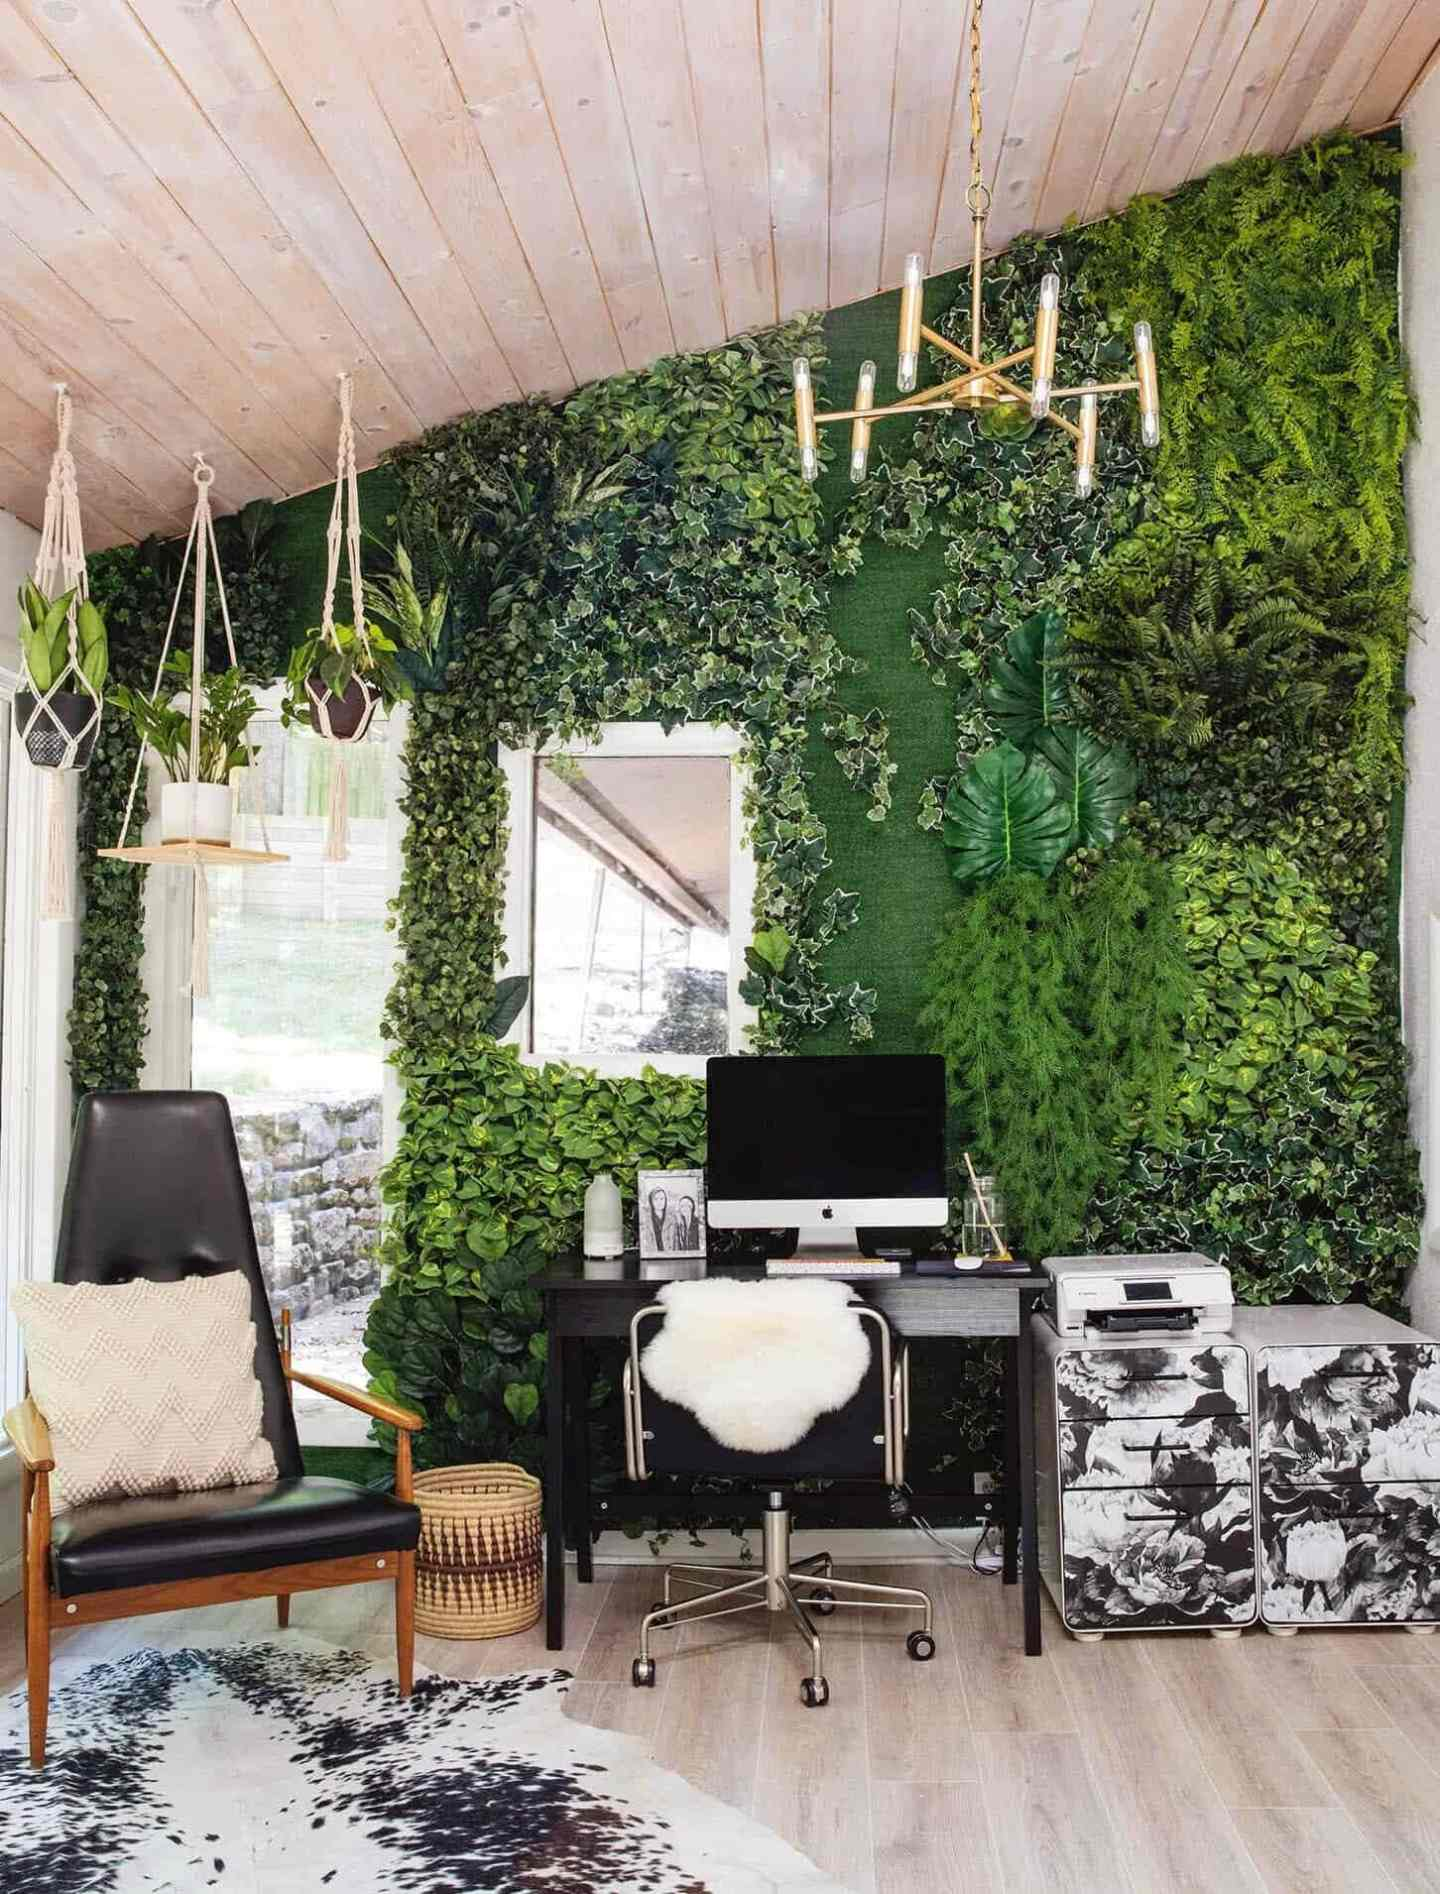 biophilic design, kitchen, home decor, design, interior design, eco friendly, sustainable, sustainable home, plants, house plants, nature